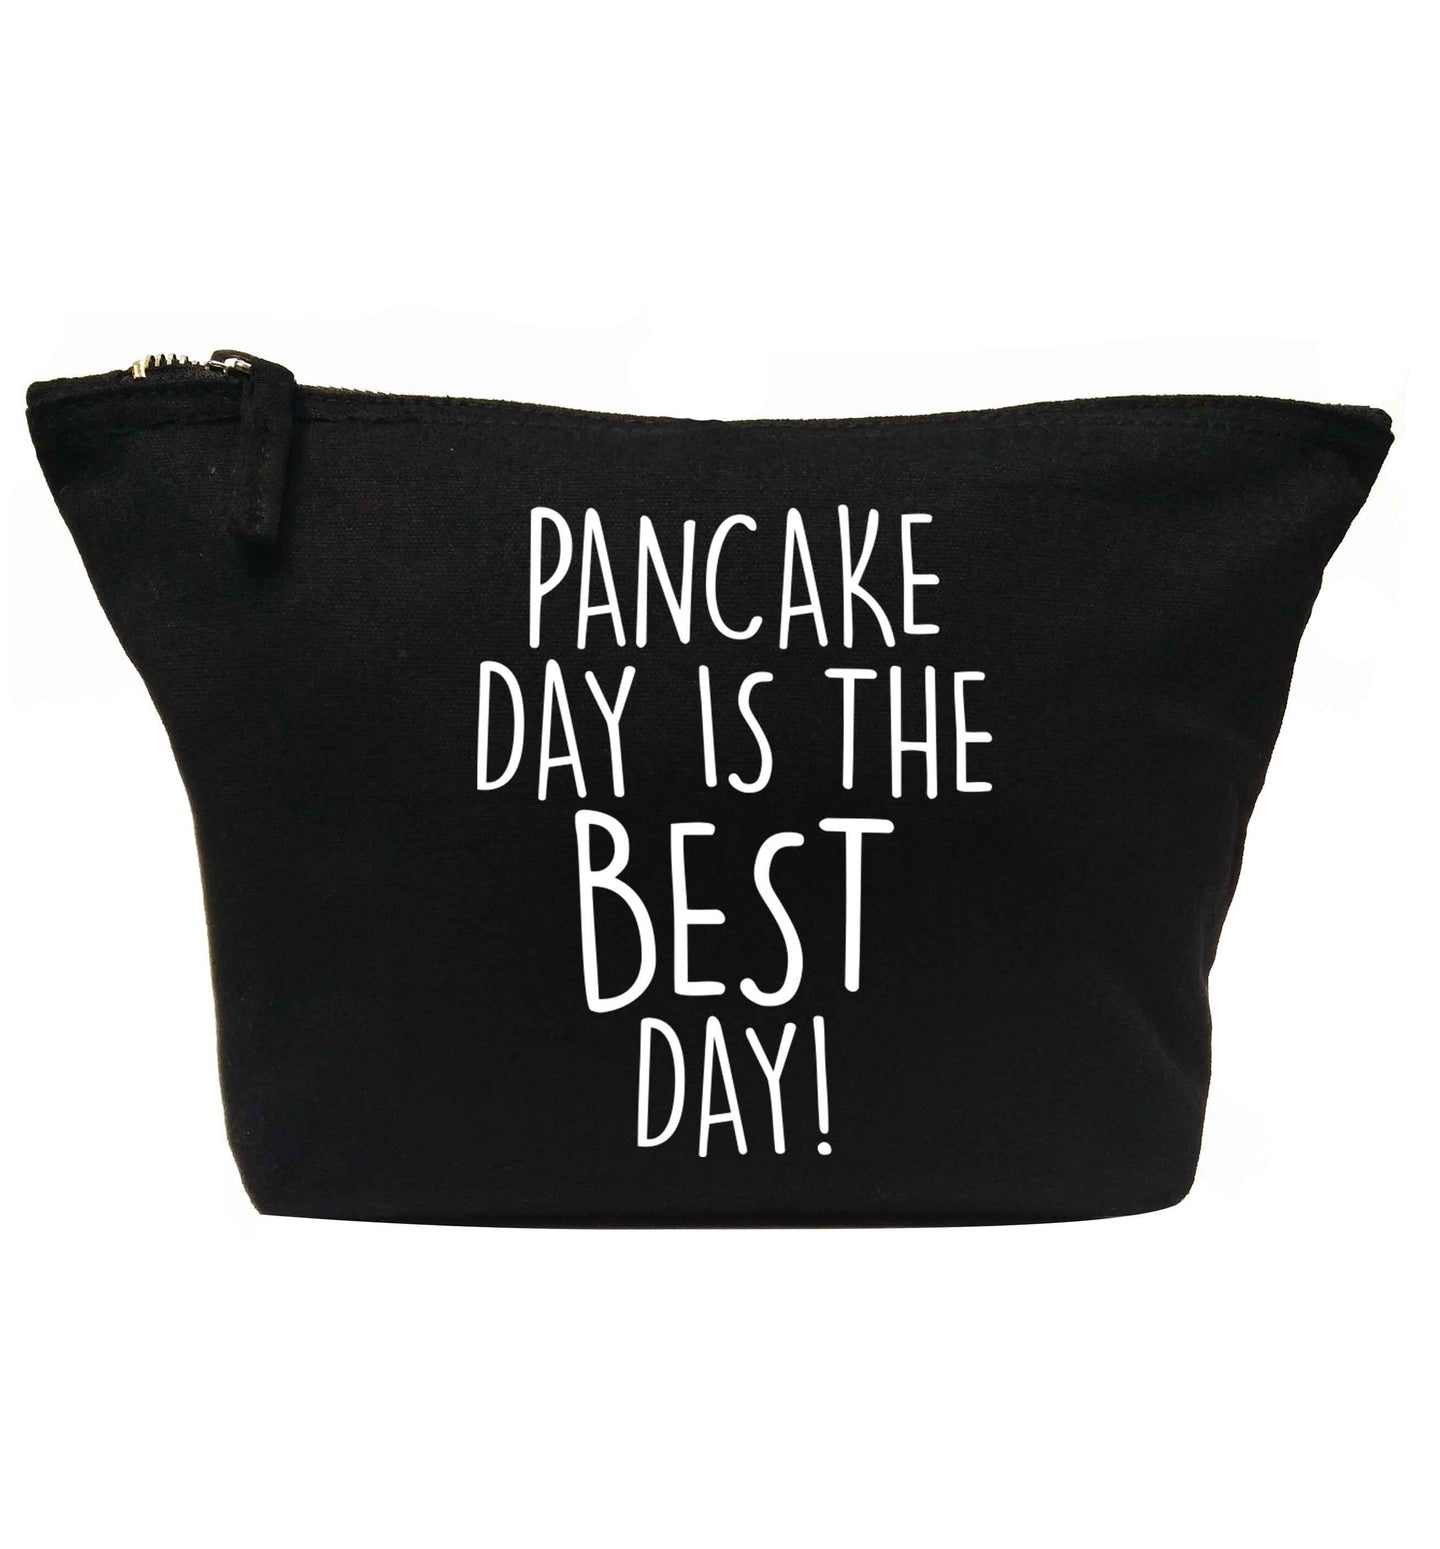 Pancake day is the best day | Makeup / wash bag